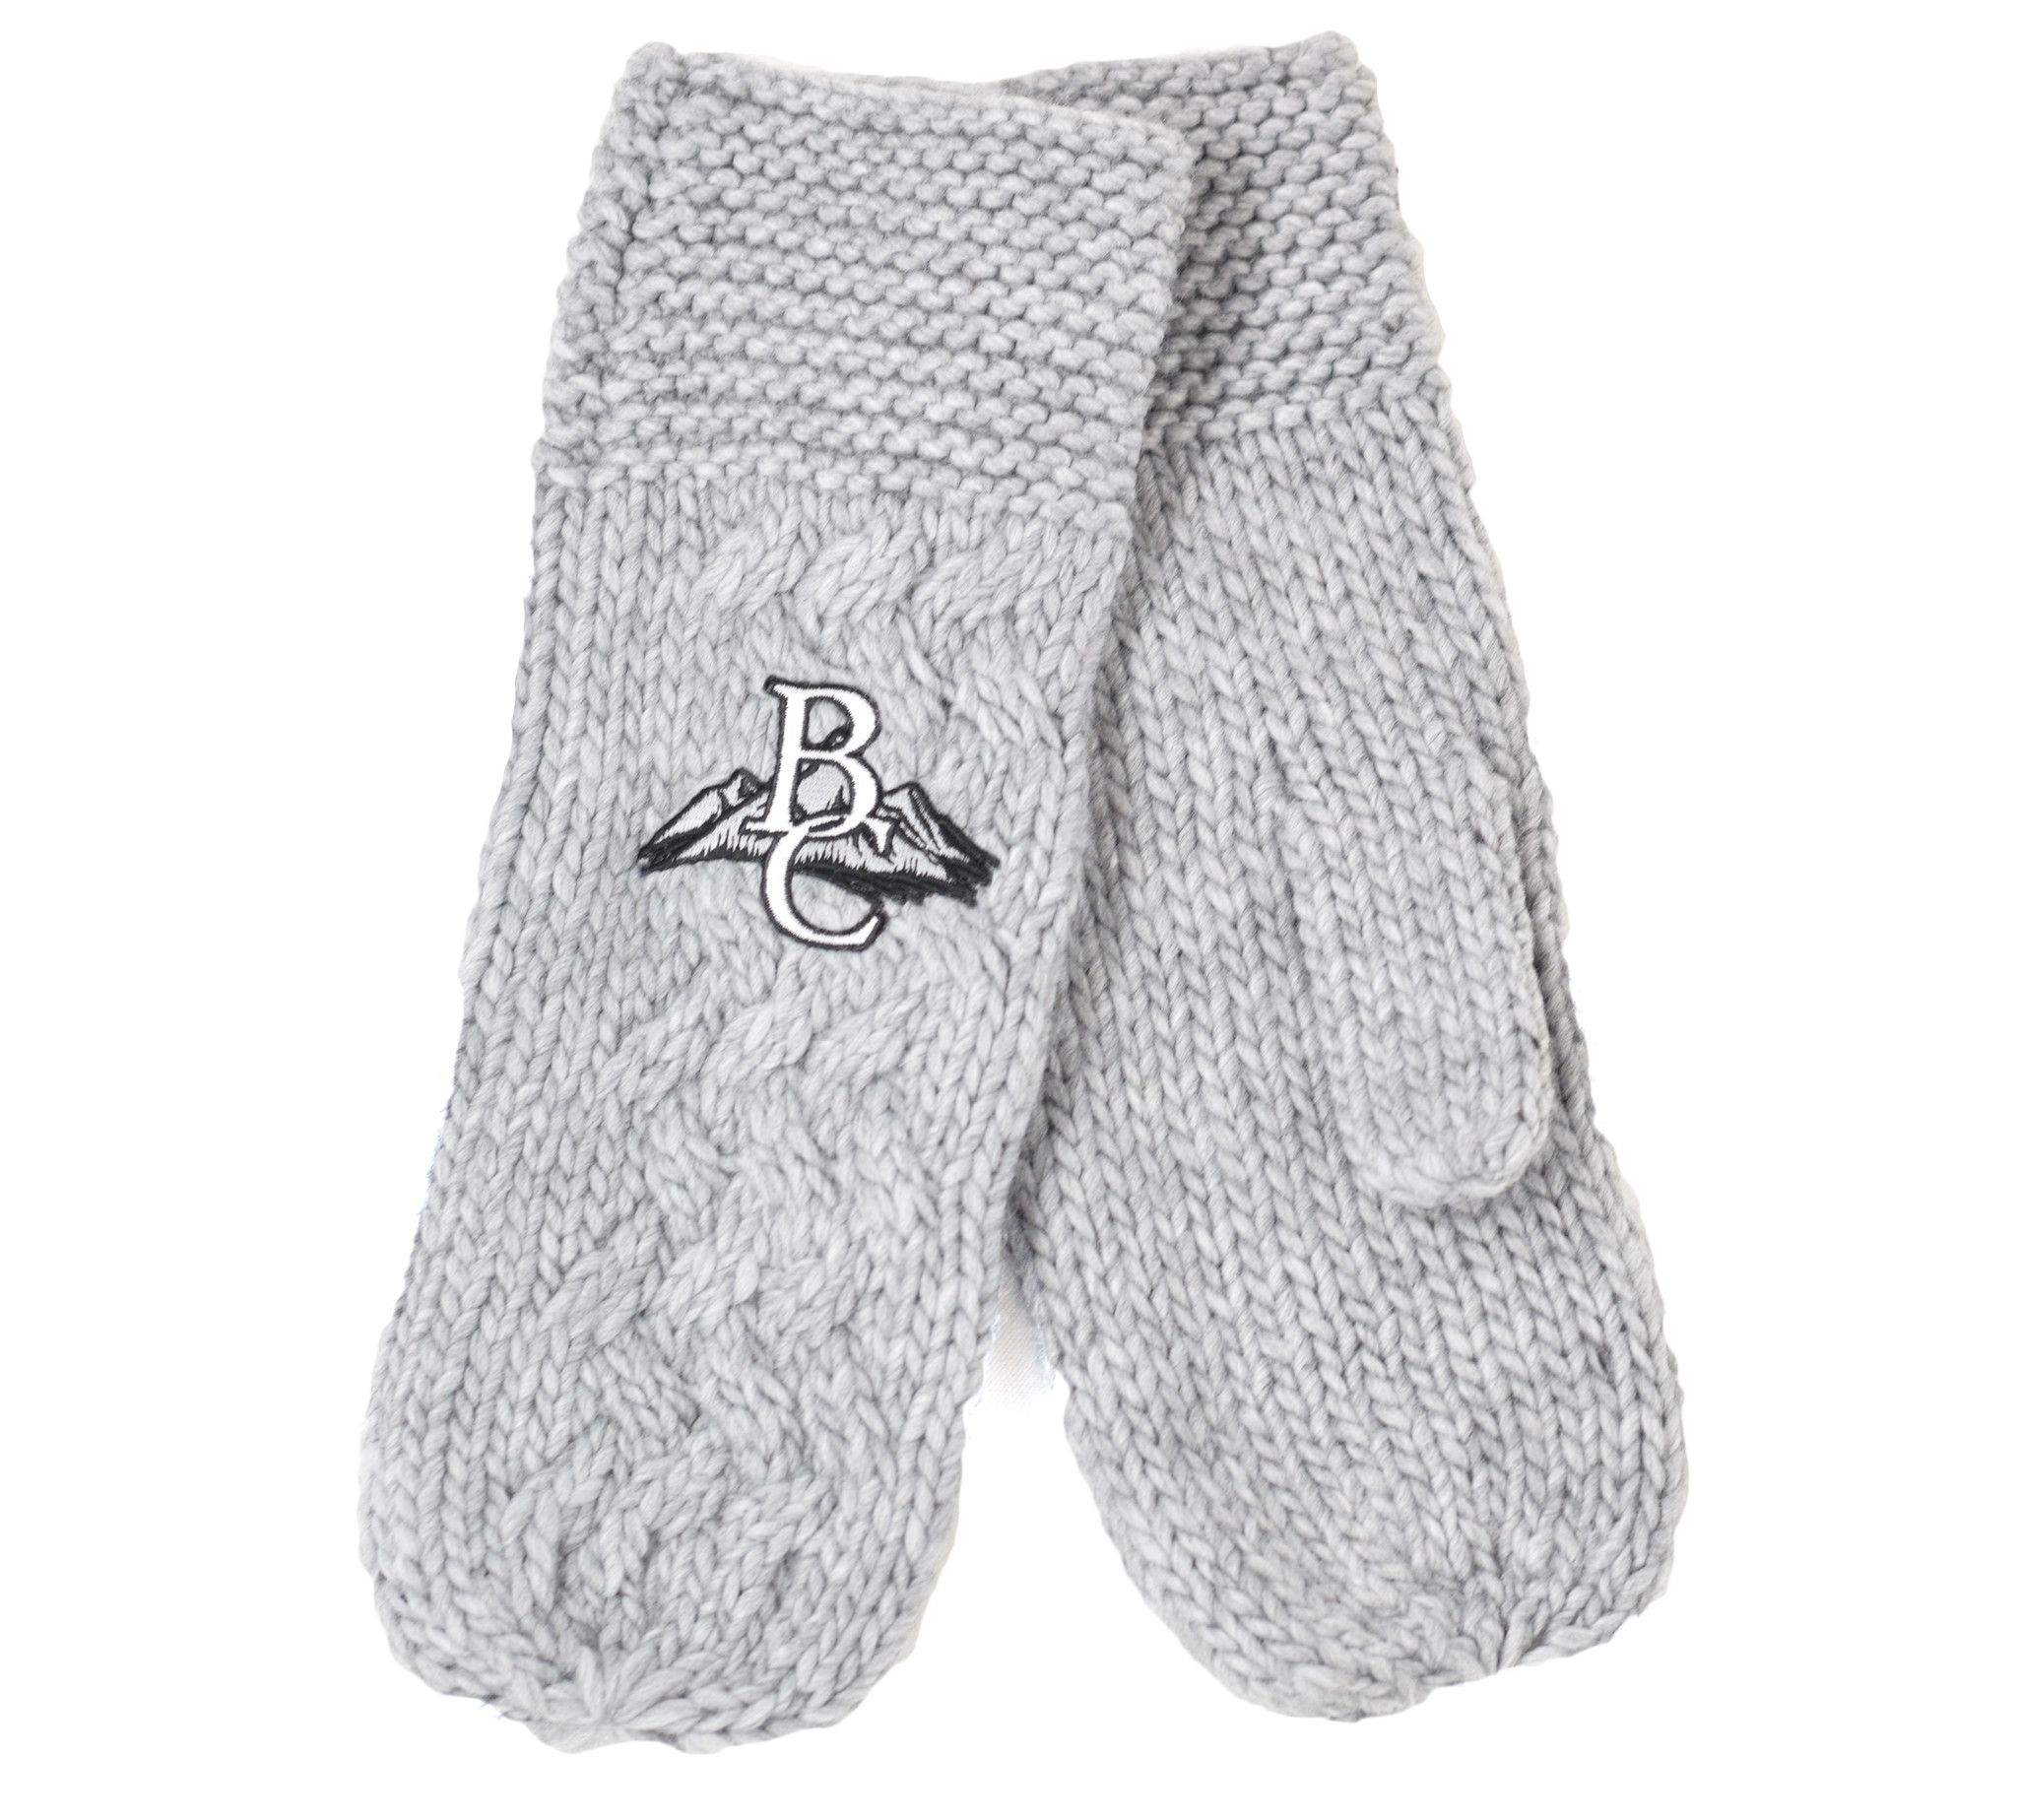 Heather Gray Mittens with  BC on mountains-1